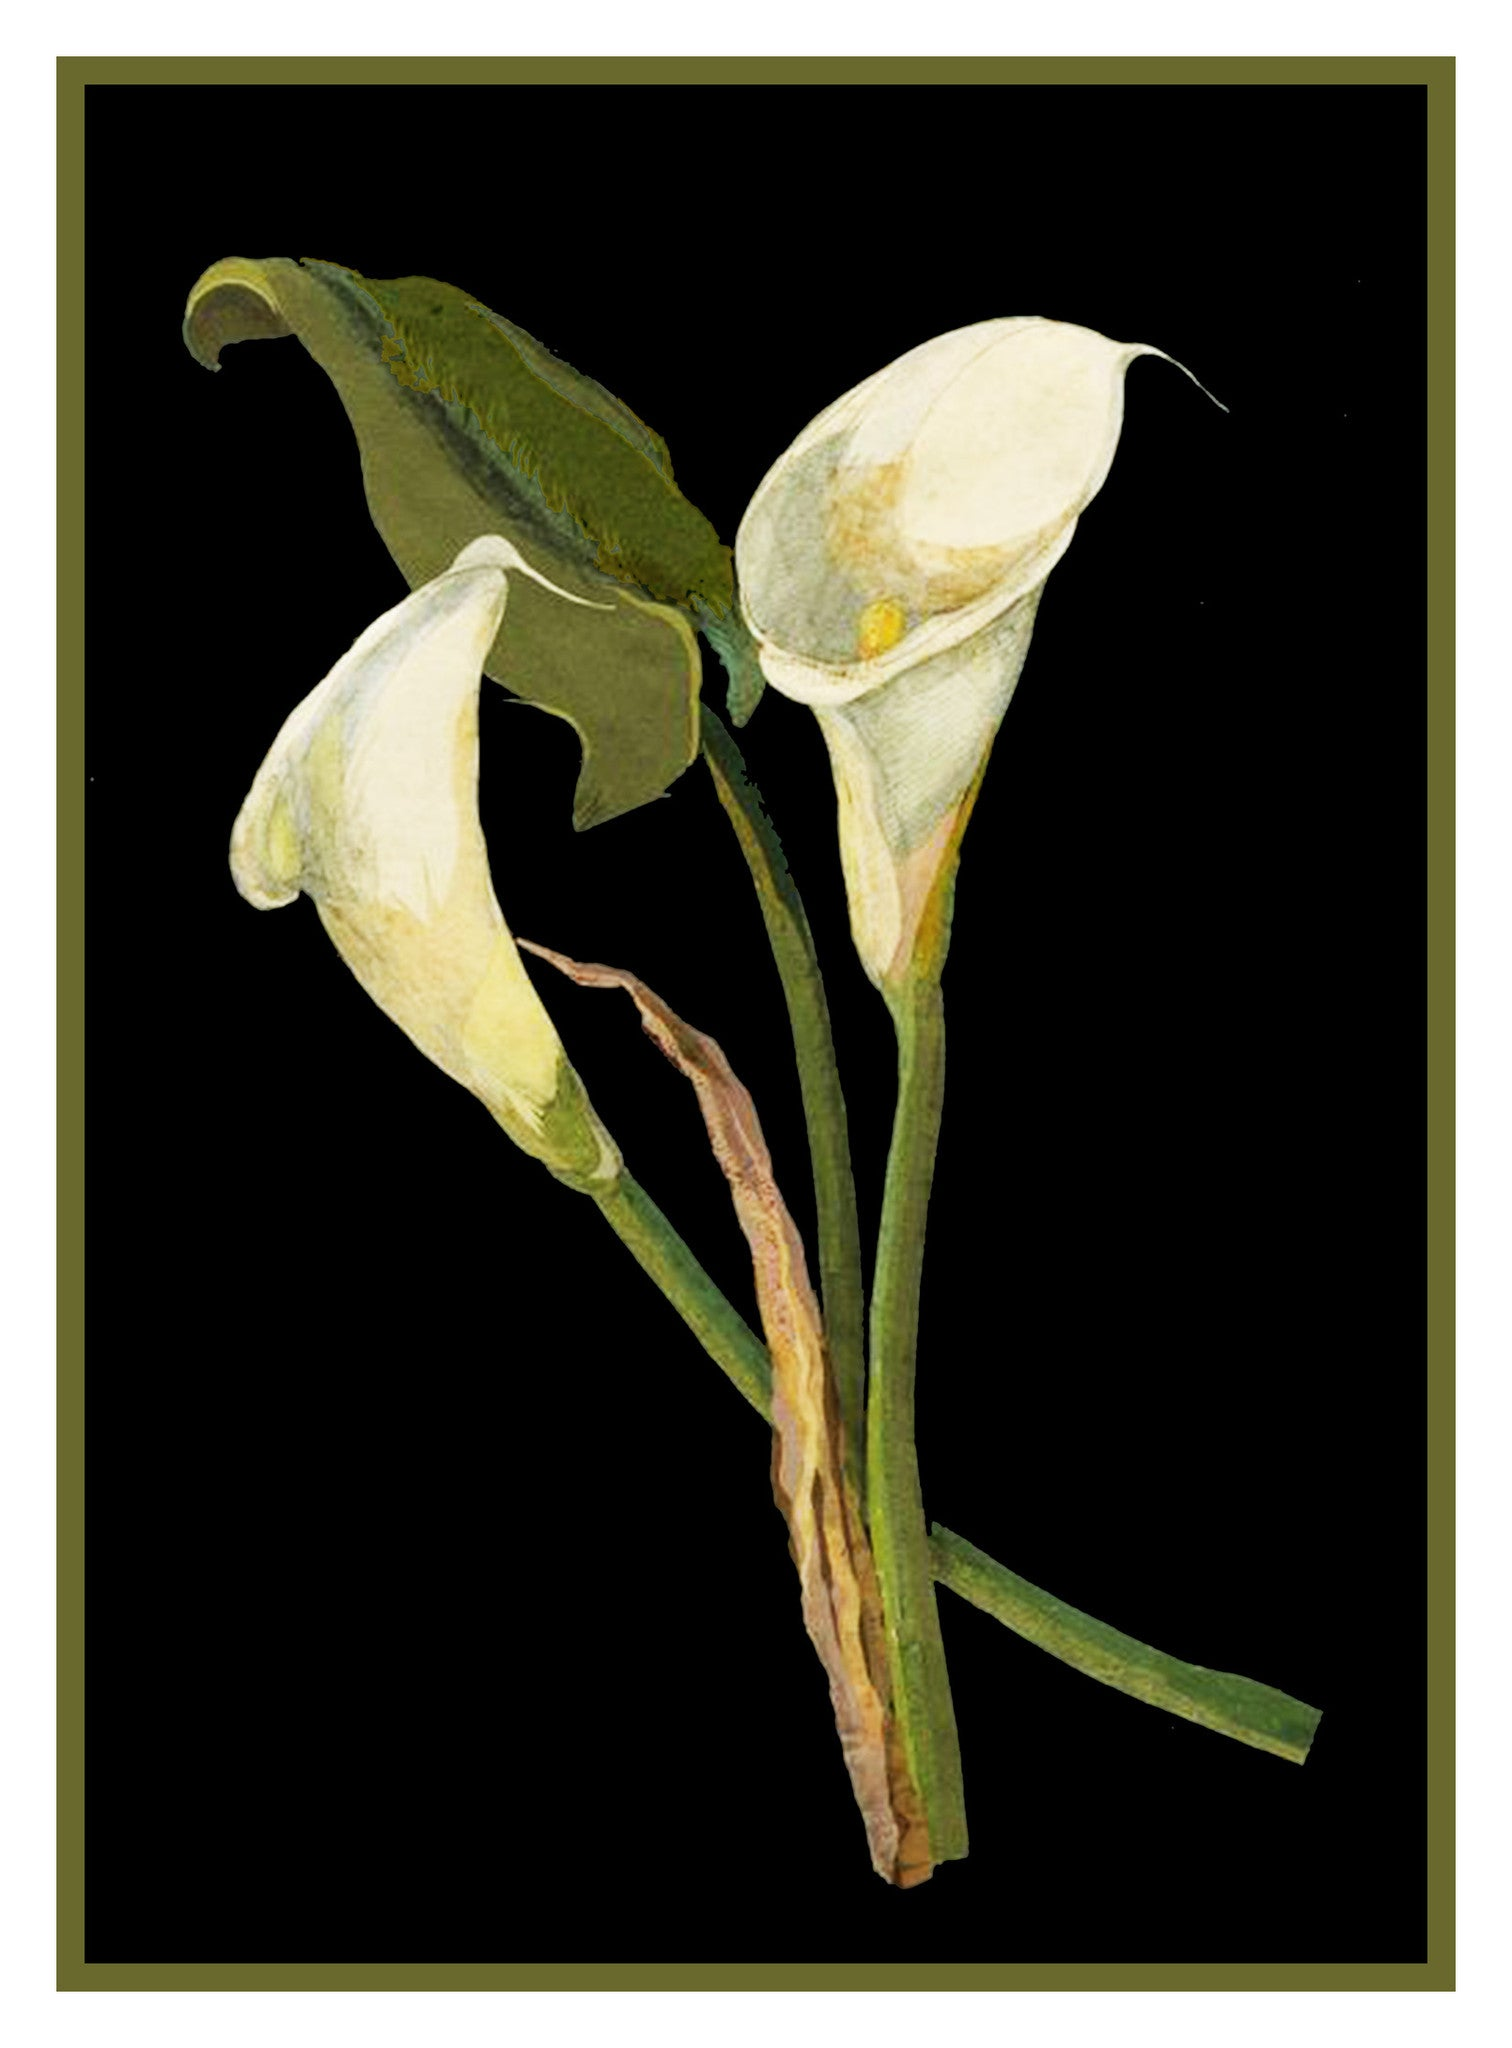 Calla lily flowers by mary delany counted cross stitch or counted calla lily flowers by mary delany counted cross stitch or counted needlepoint pattern izmirmasajfo Image collections